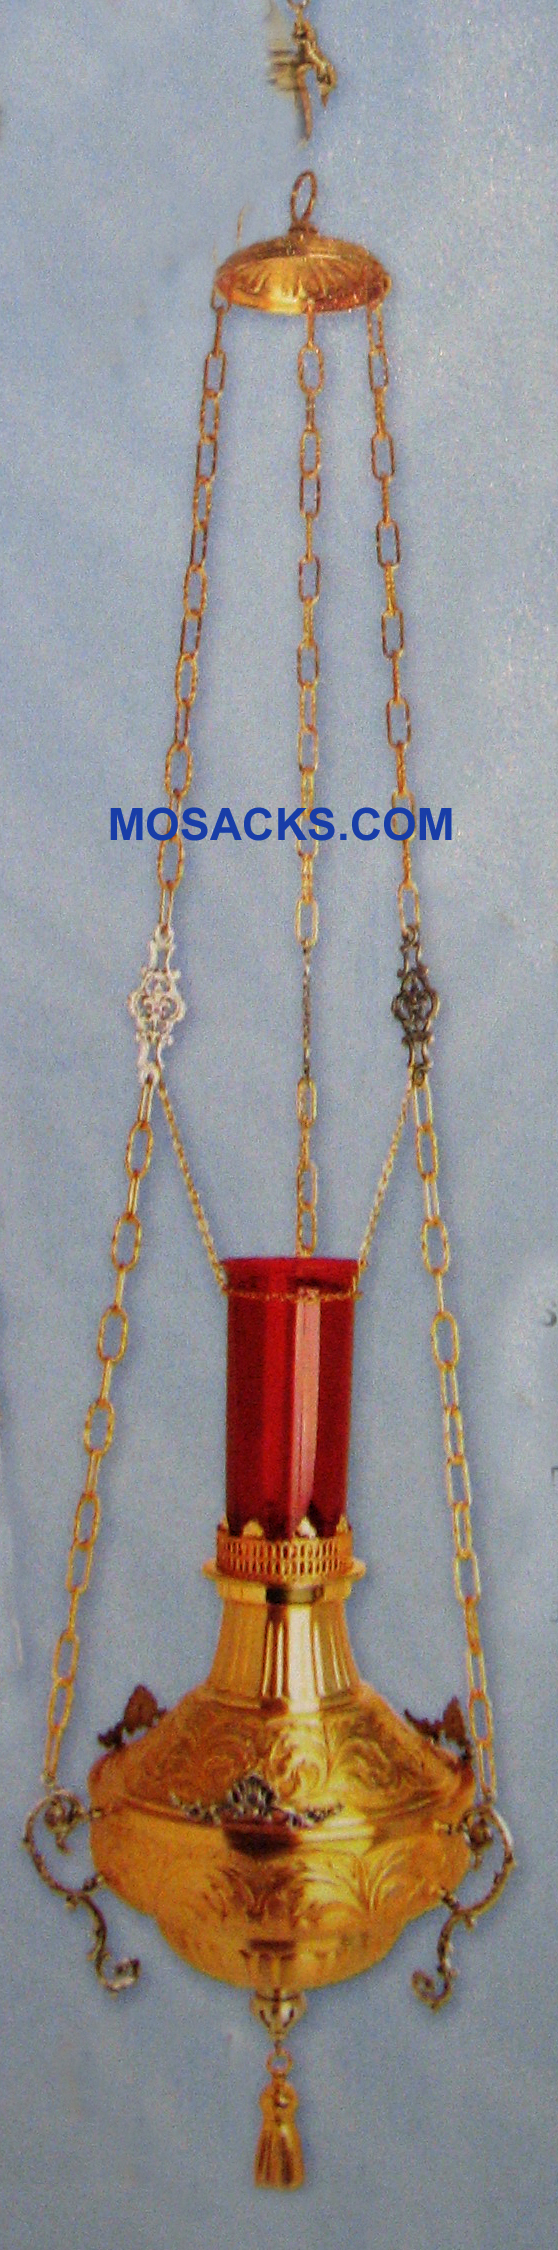 "Hanging Sanctuary Lamp 24K Gold Plated, 60"" High # K585"